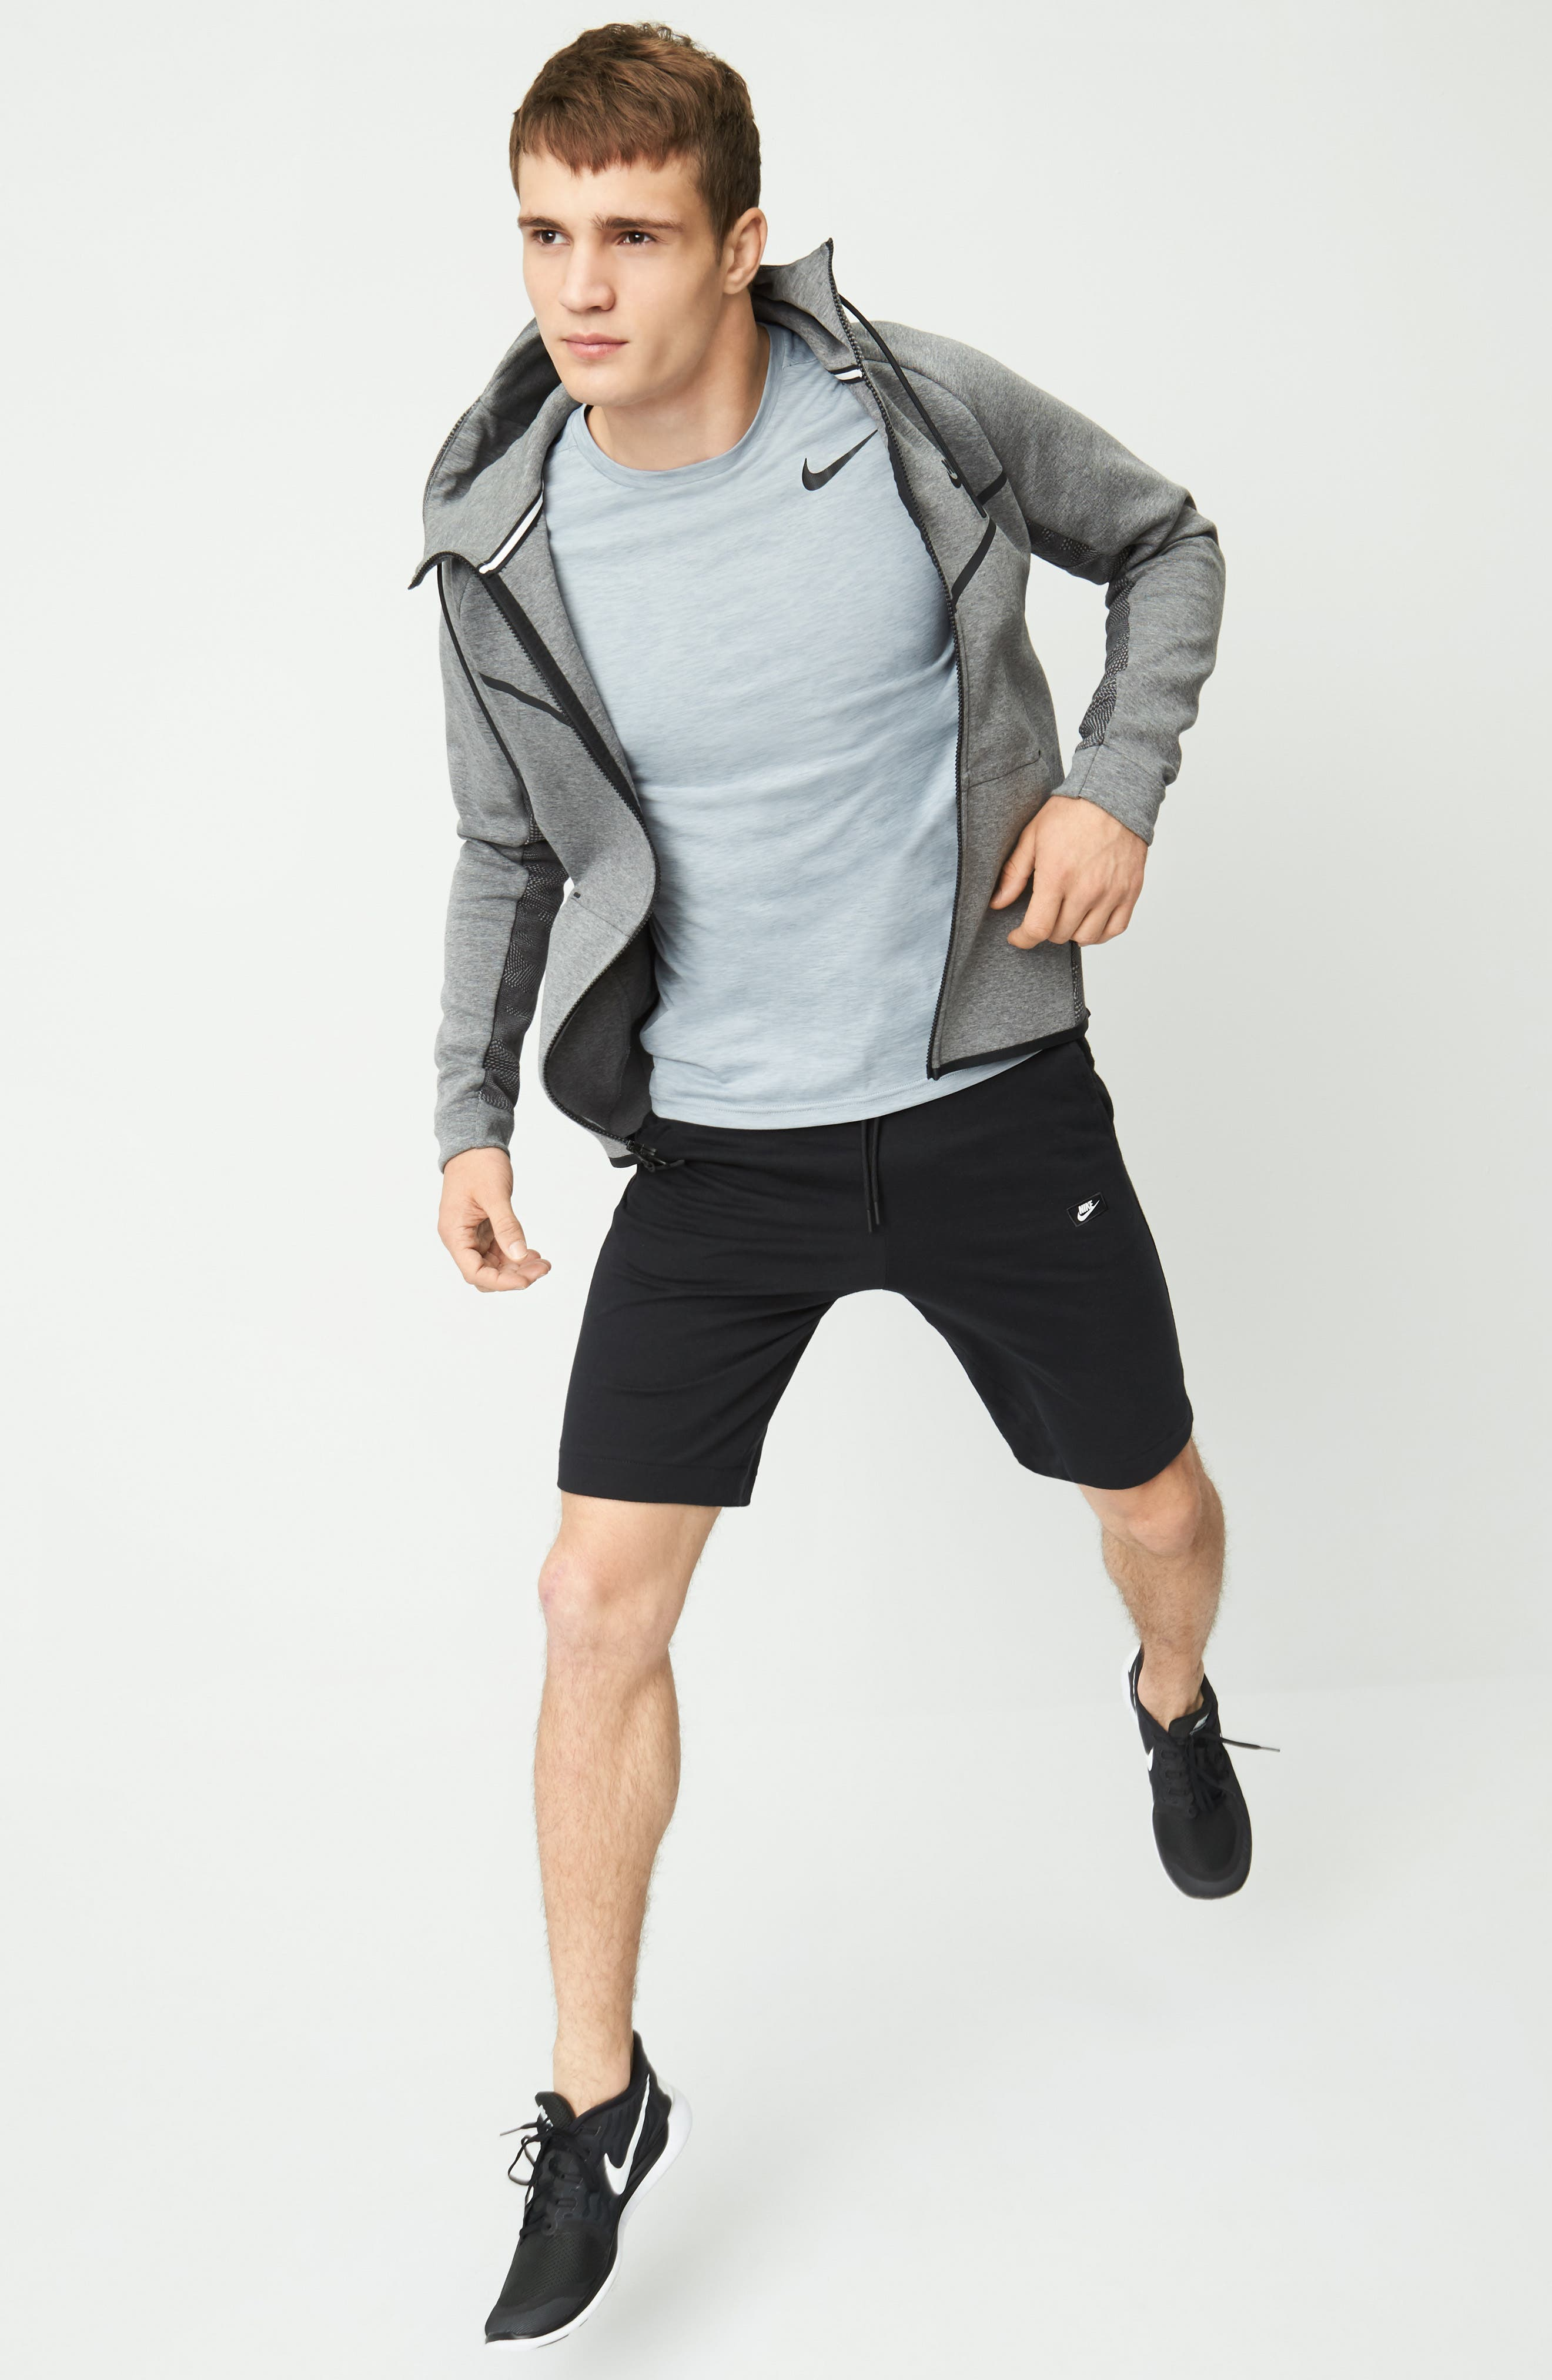 Nike Hoodie, T-Shirt & Shorts Outfit with Accessories